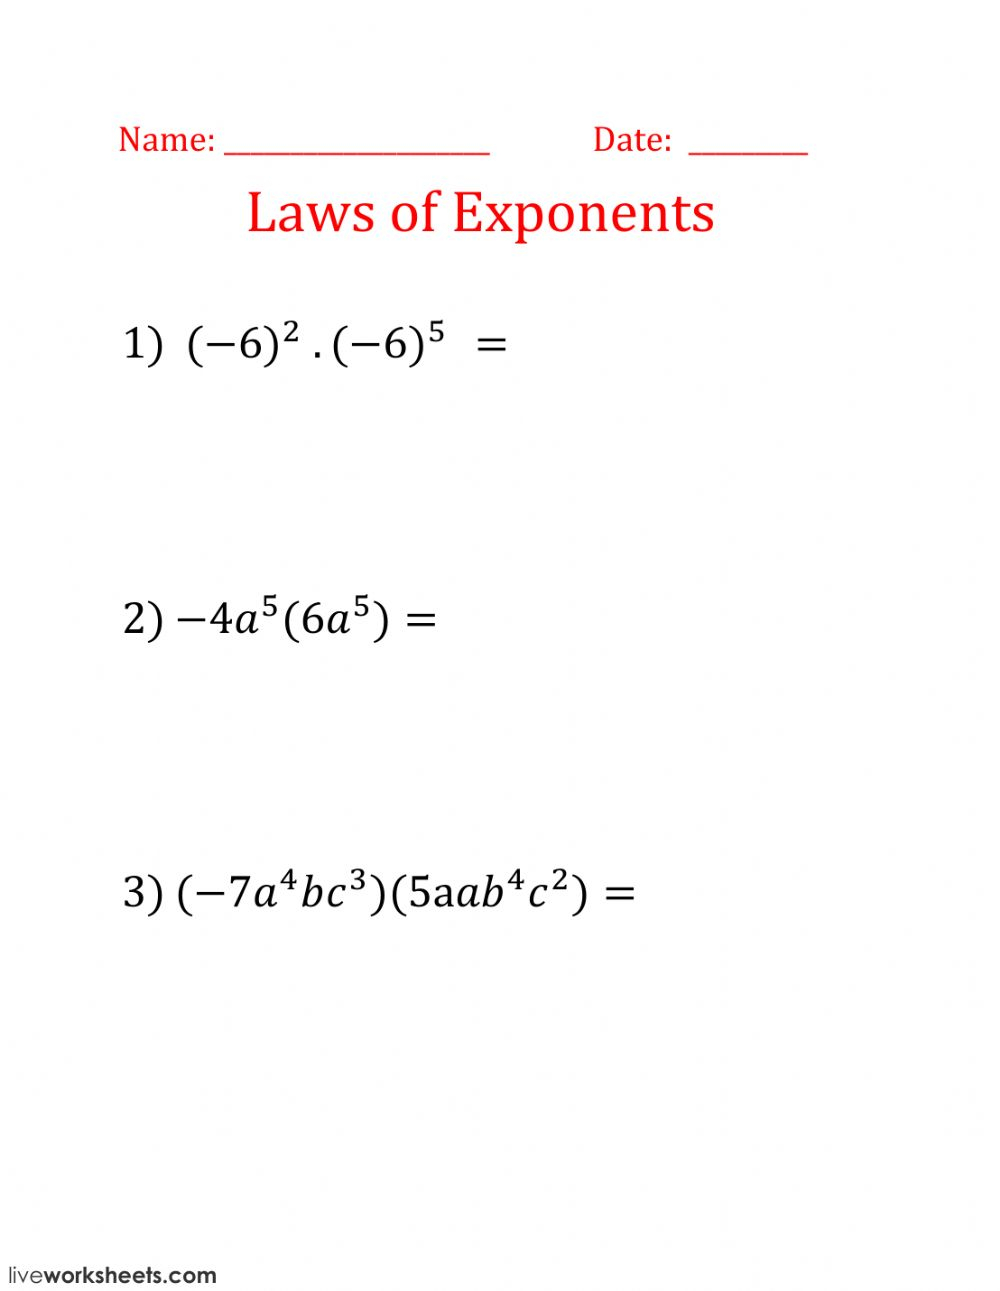 Laws Of Exponents - Interactive Worksheet